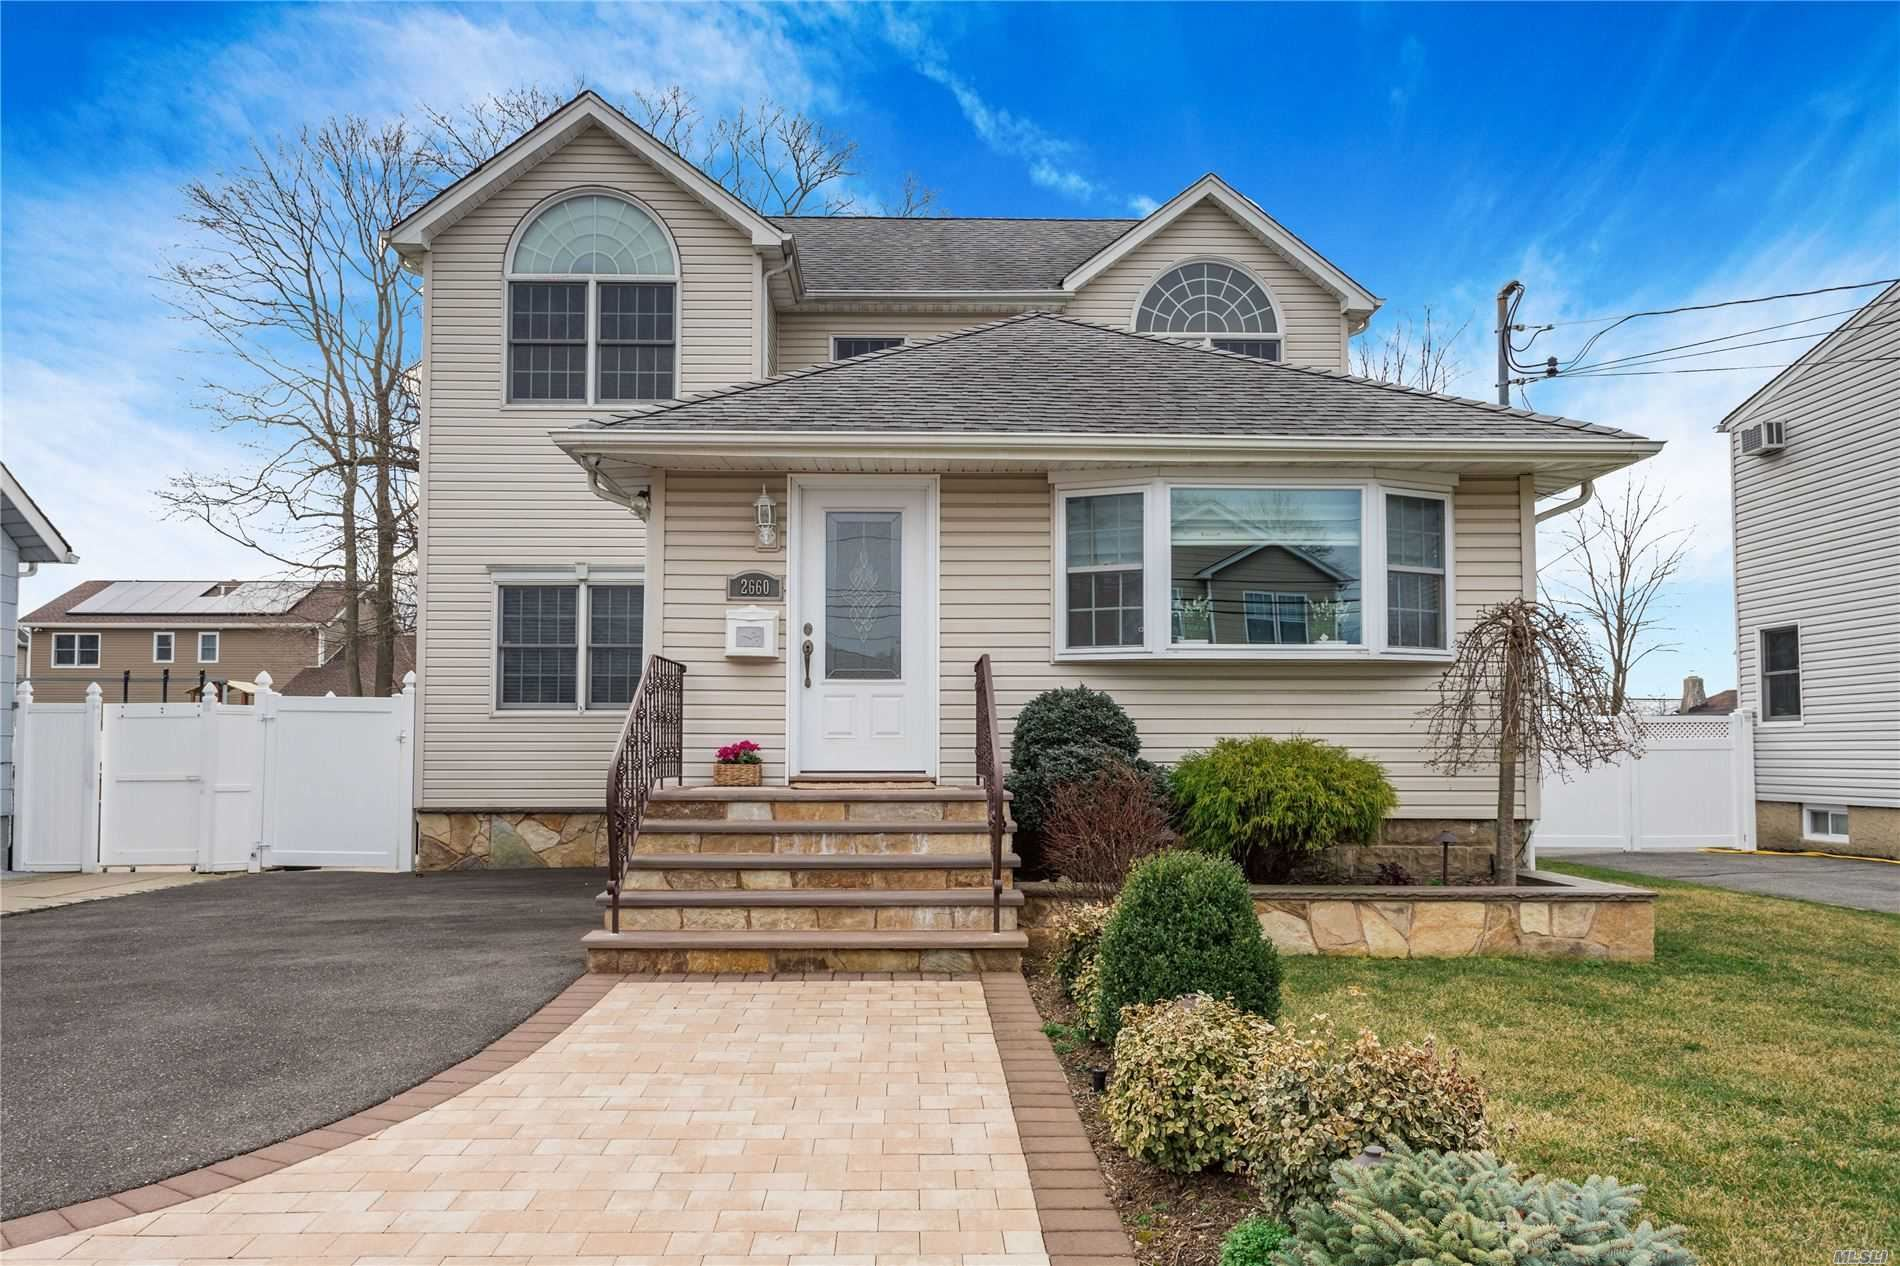 2660 Orchard Street, Bellmore, NY 11710 - MLS#: 3207506